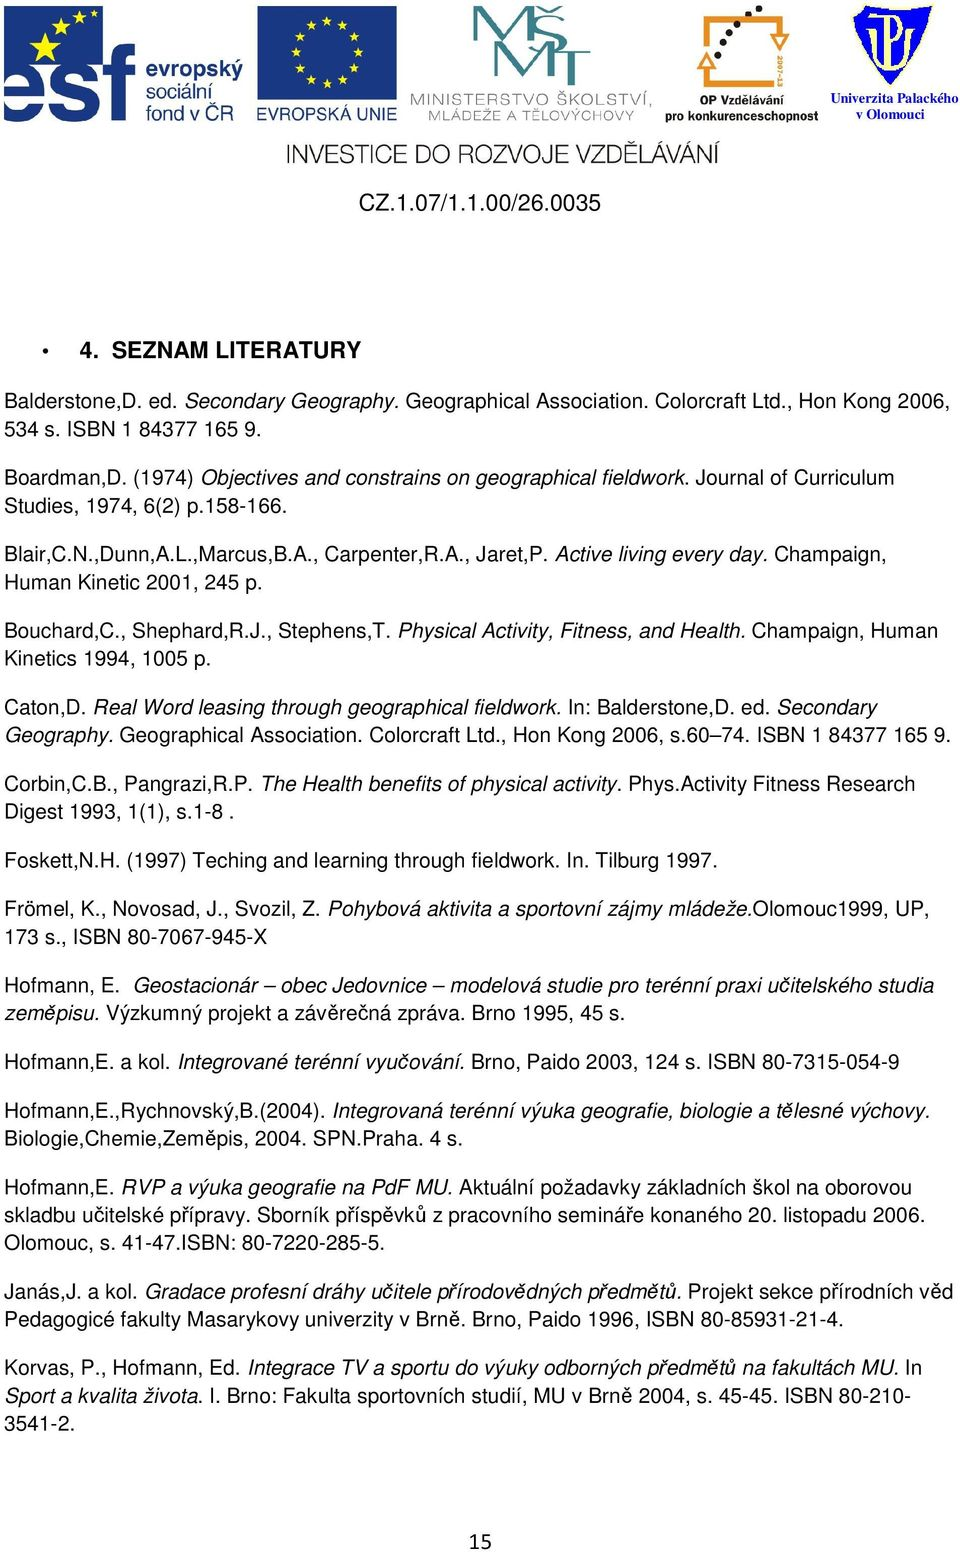 Champaign, Human Kinetic 2001, 245 p. Bouchard,C., Shephard,R.J., Stephens,T. Physical Activity, Fitness, and Health. Champaign, Human Kinetics 1994, 1005 p. Caton,D.